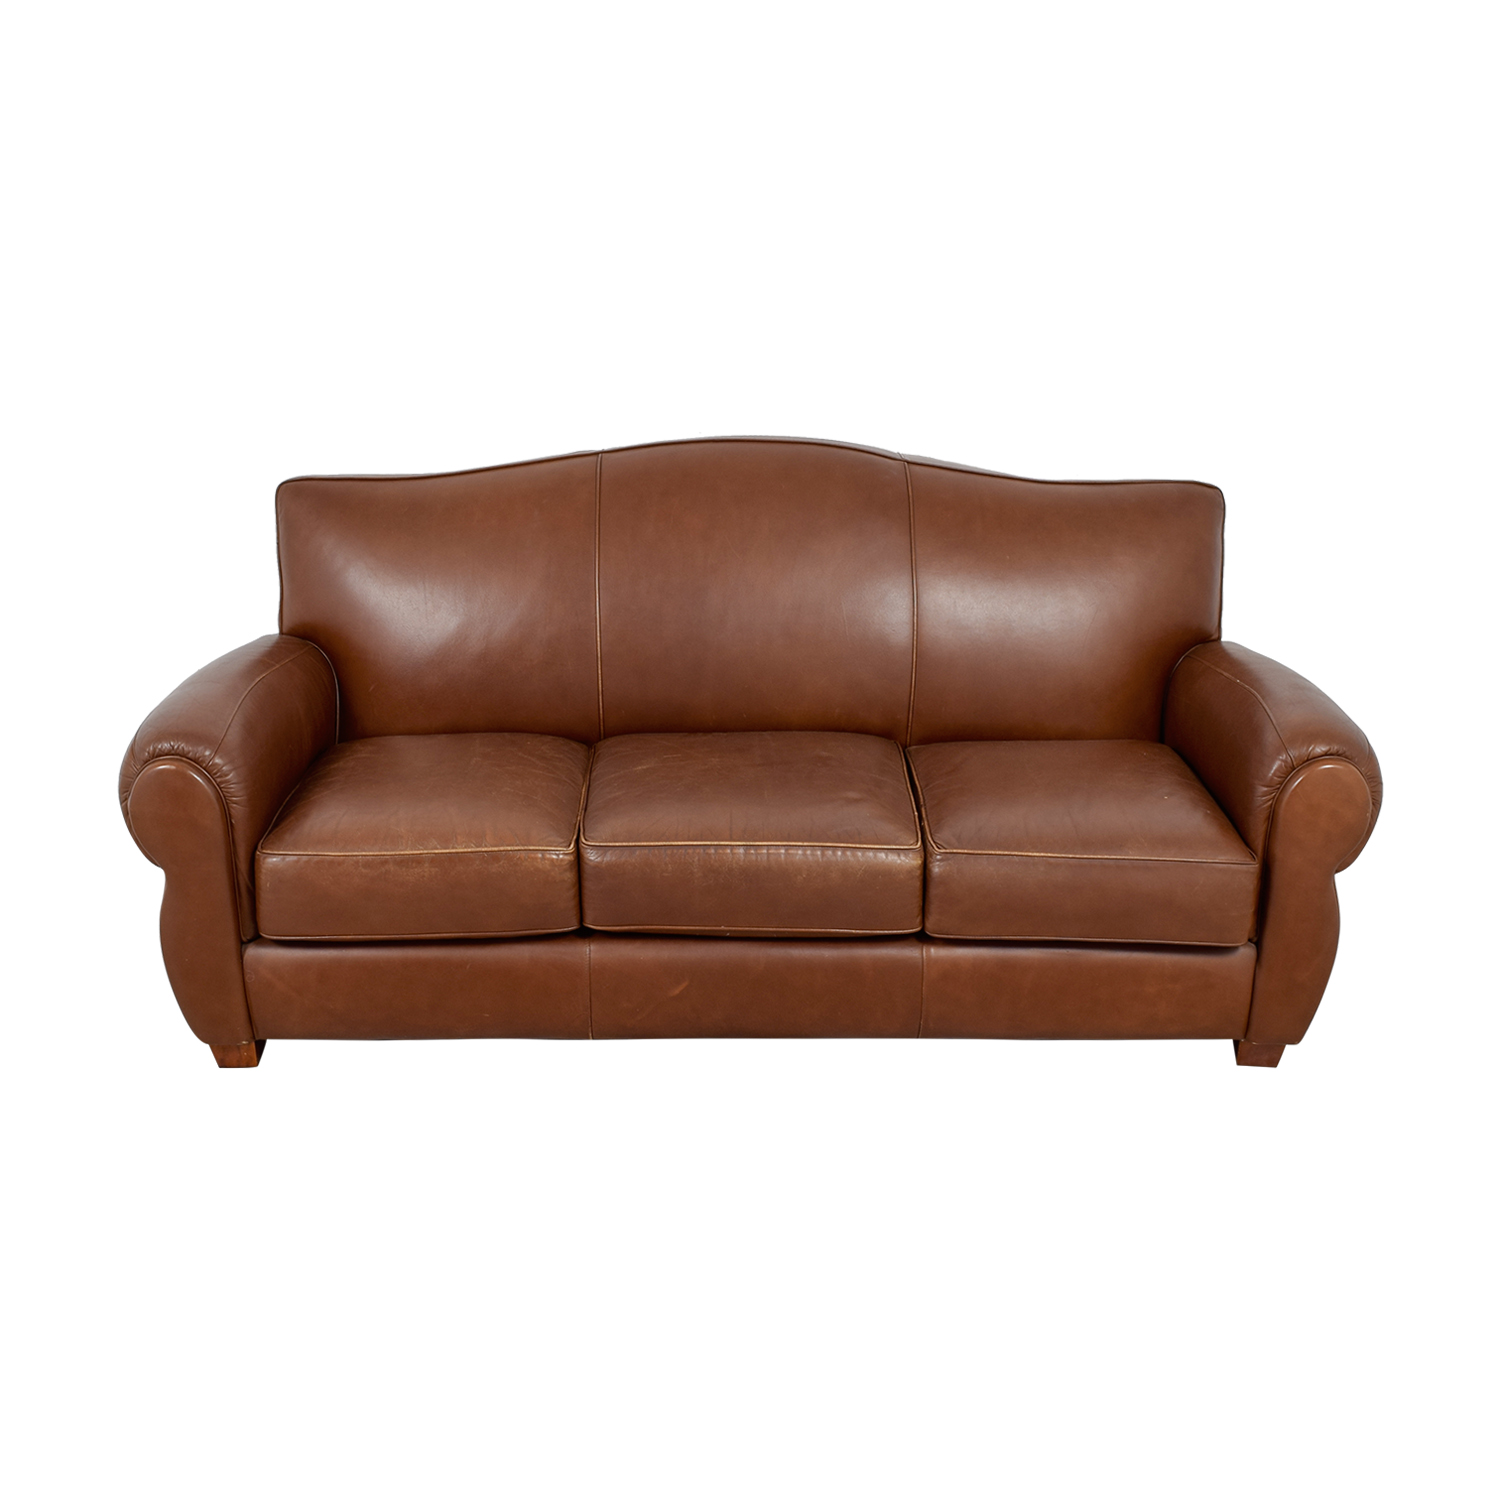 Thomasville Thomasville Brown Leather Three-Cushion Sofa Classic Sofas